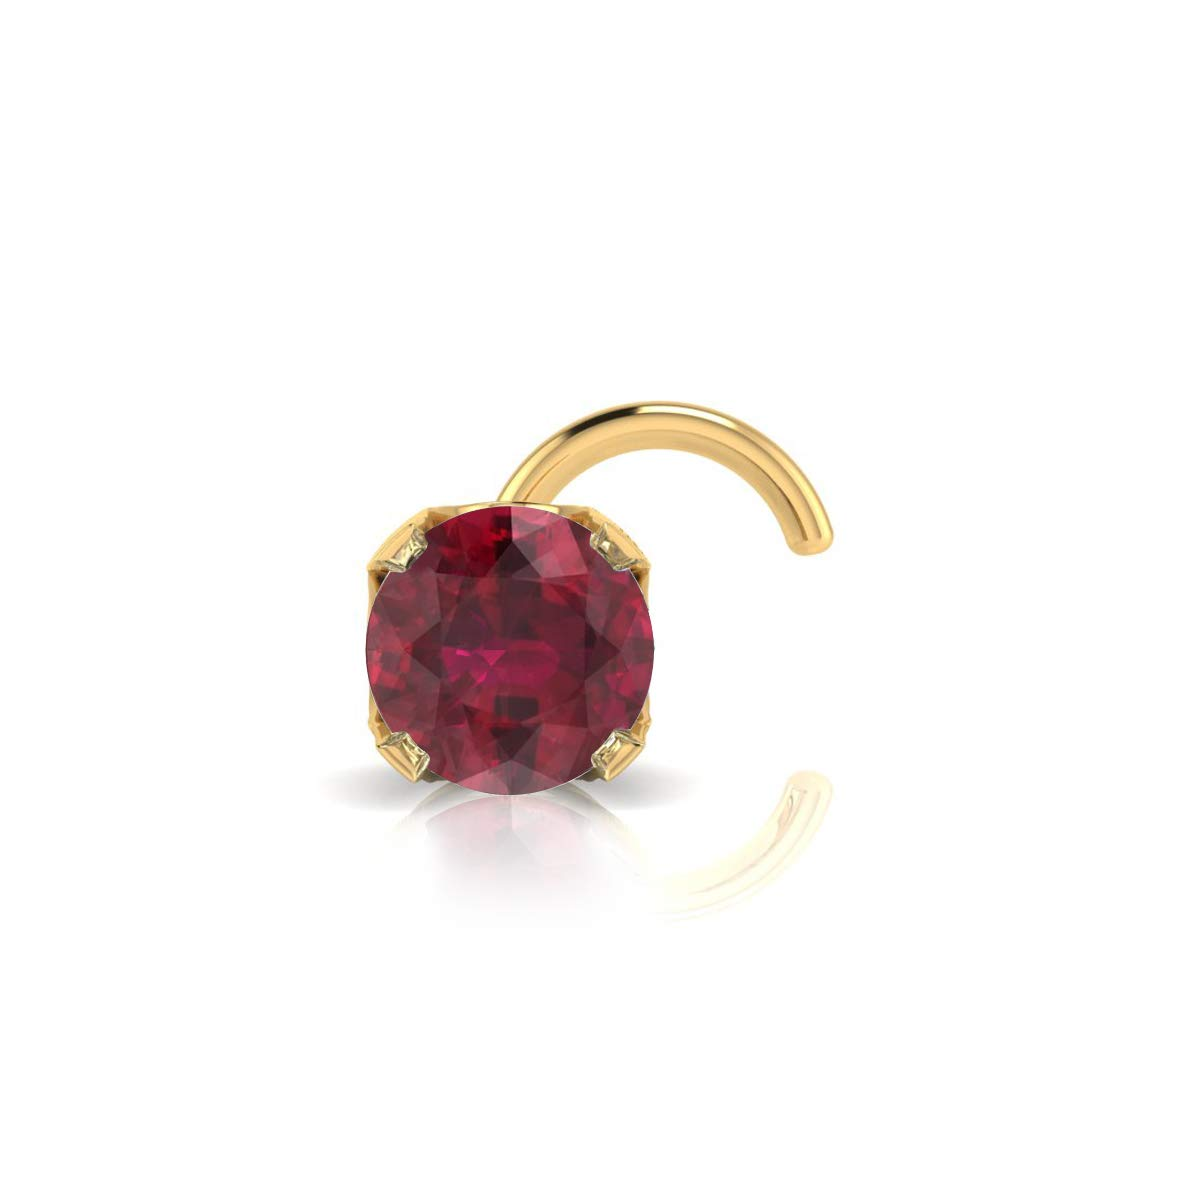 2mm 0.03 Carat Ruby Stud Nose Ring In 14K Yellow Gold